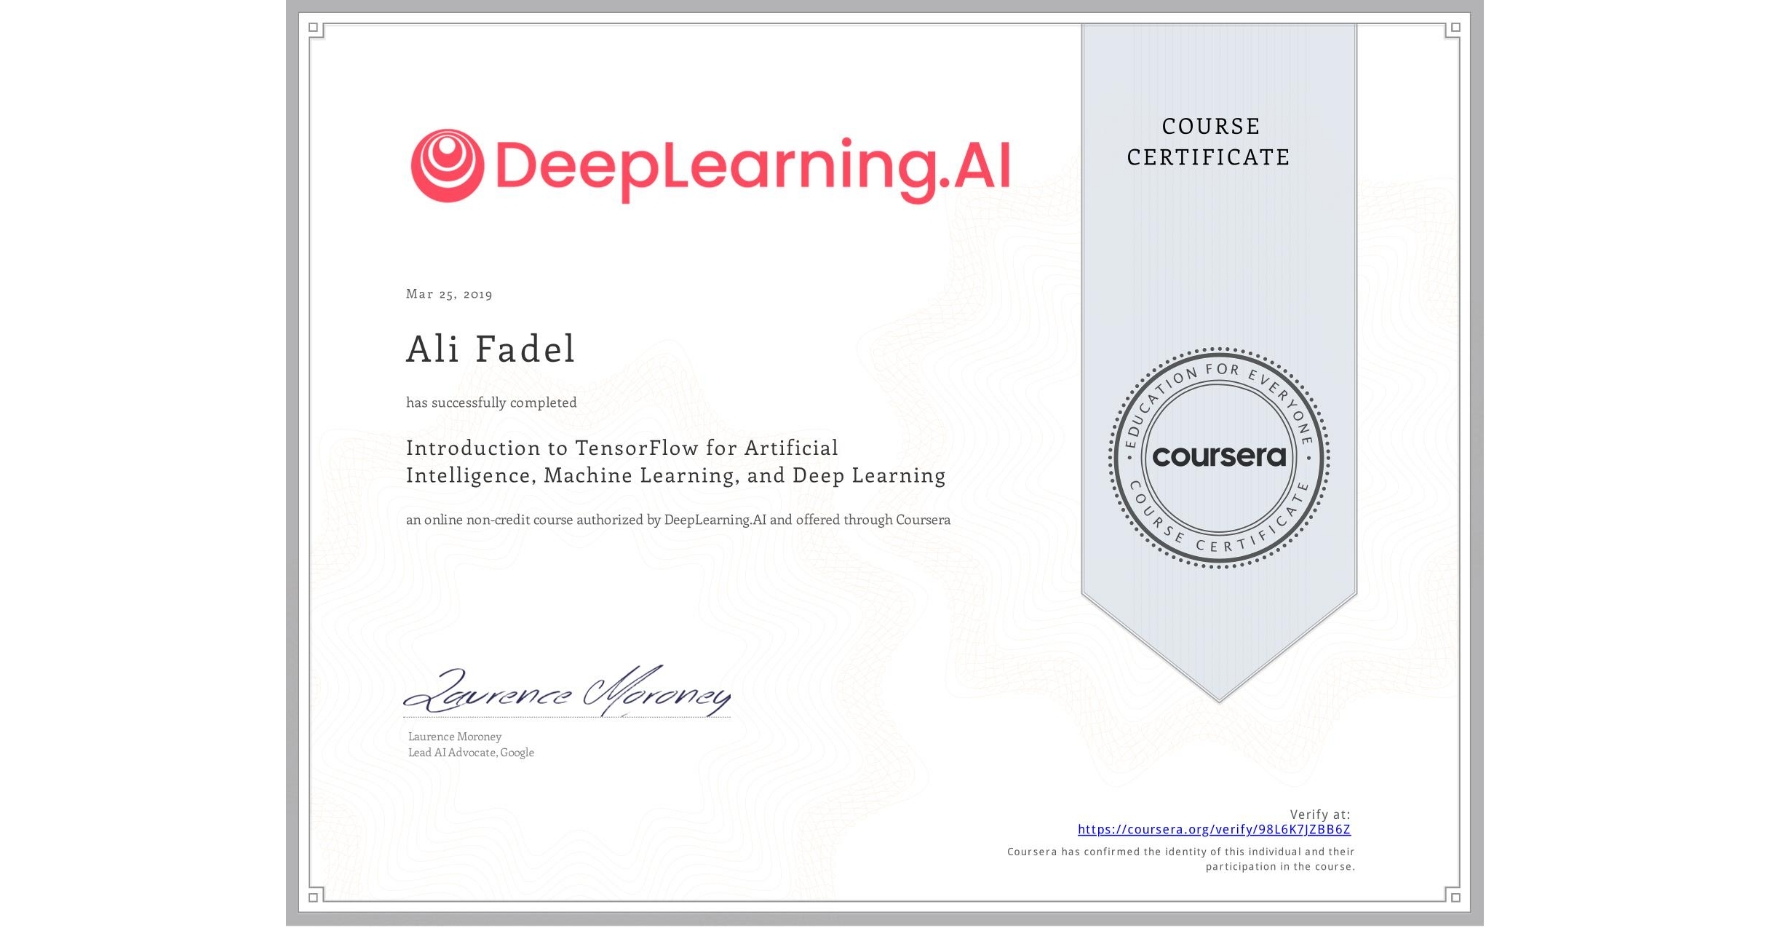 View certificate for Ali Fadel, Introduction to TensorFlow for Artificial Intelligence, Machine Learning, and Deep Learning, an online non-credit course authorized by DeepLearning.AI and offered through Coursera